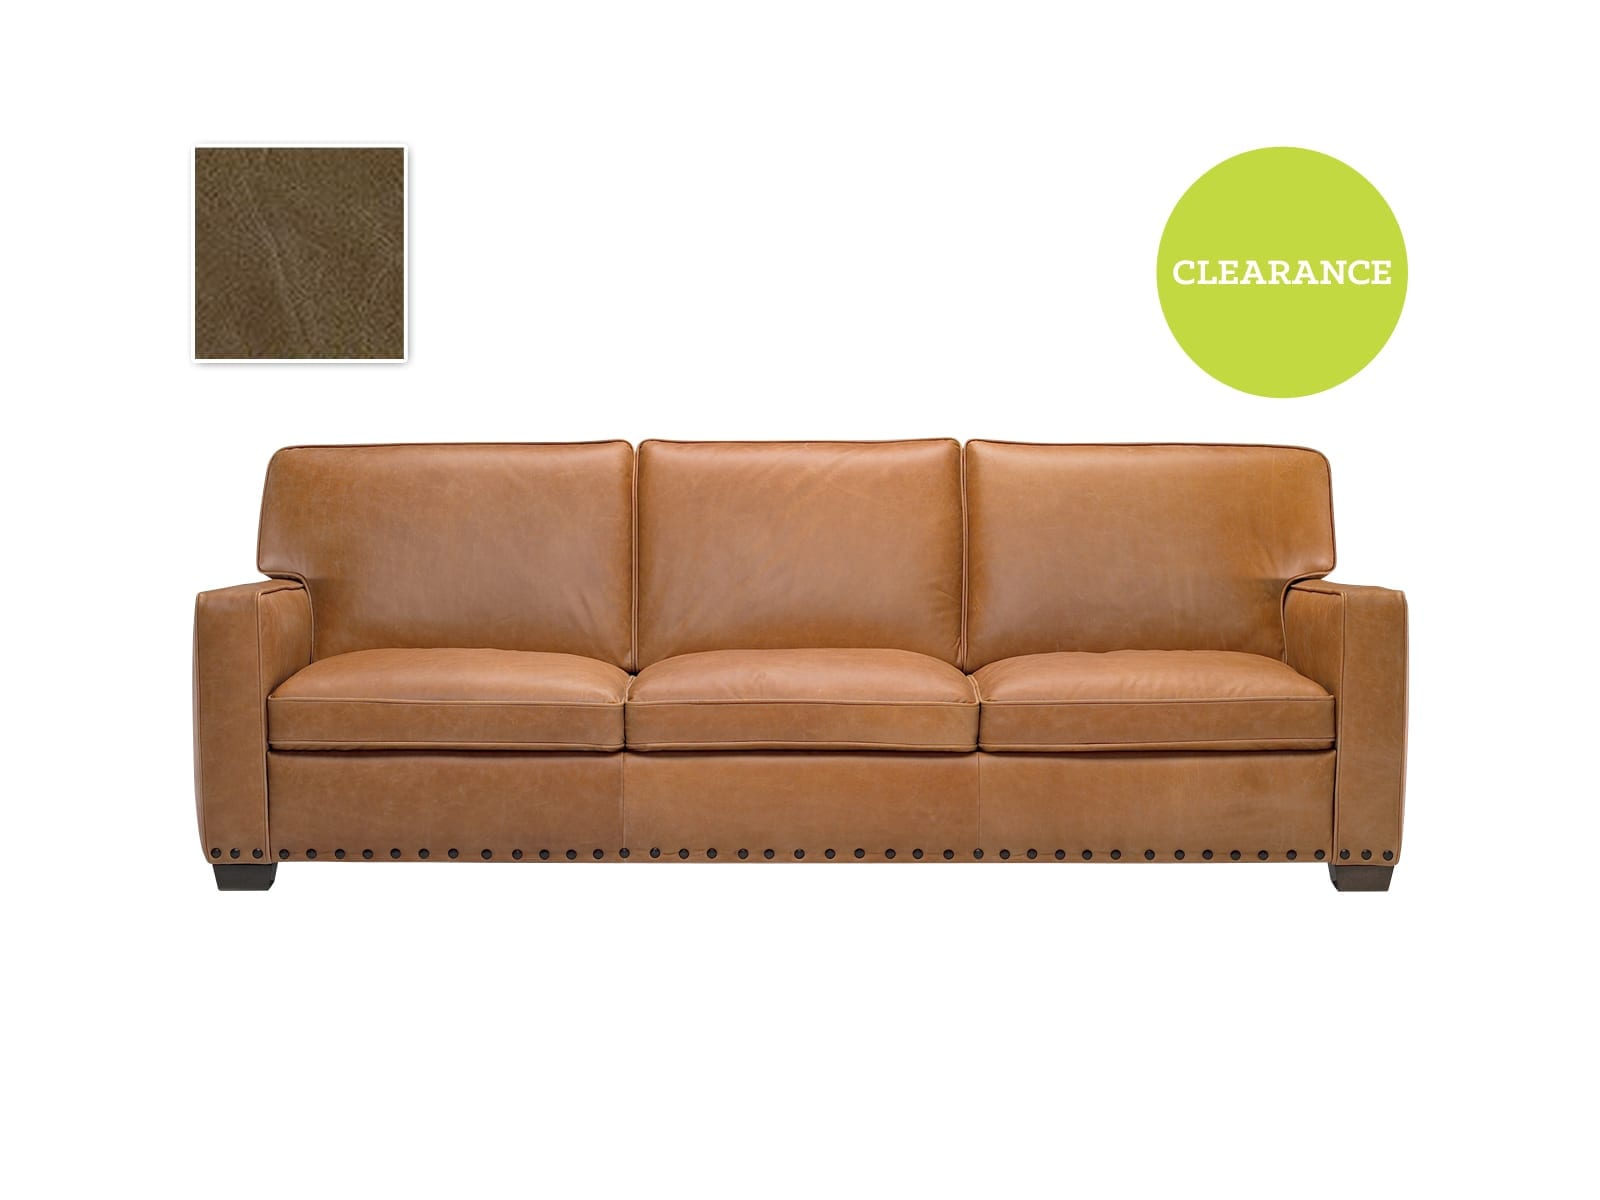 Editions B528 Velluto 064 Large Sofa 15ZB Leather 192373